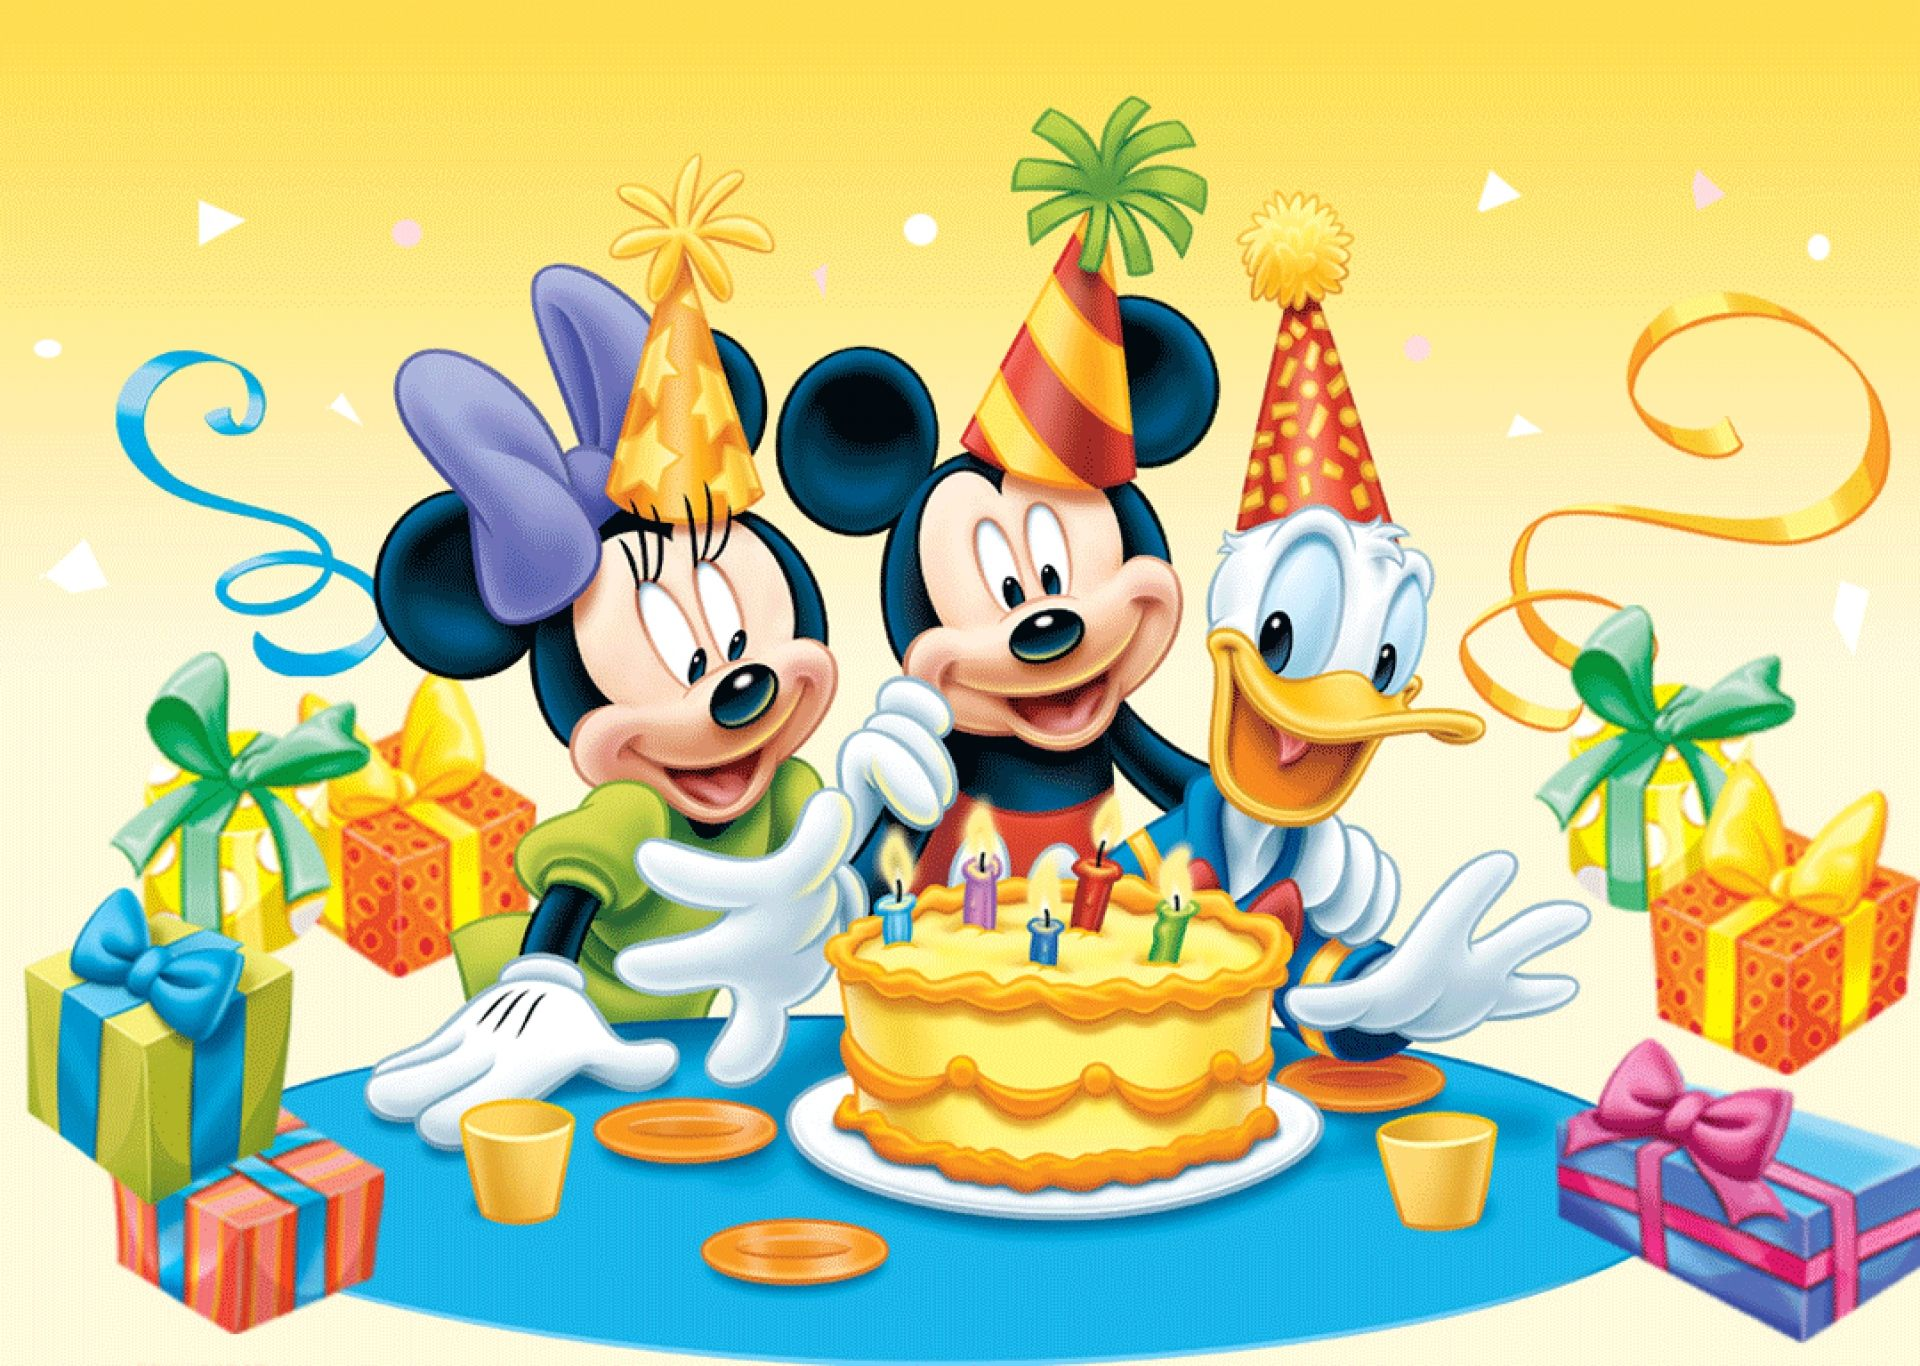 Disney character birthday | Disney Holidays & Occasions | Pinterest ...